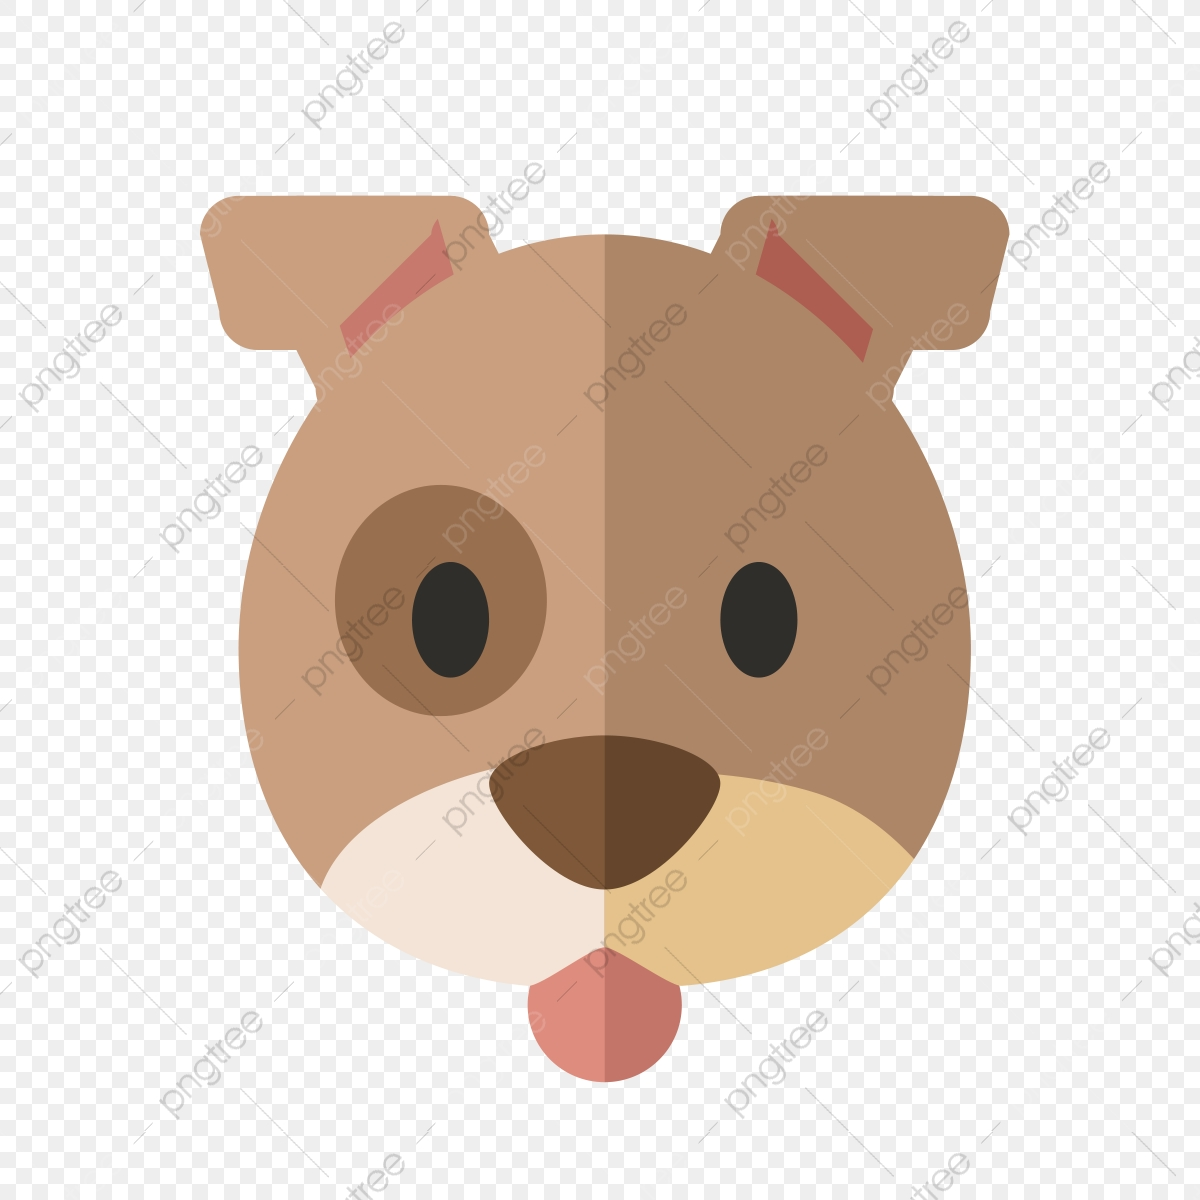 Dogs clipart icon, Dogs icon Transparent FREE for download.